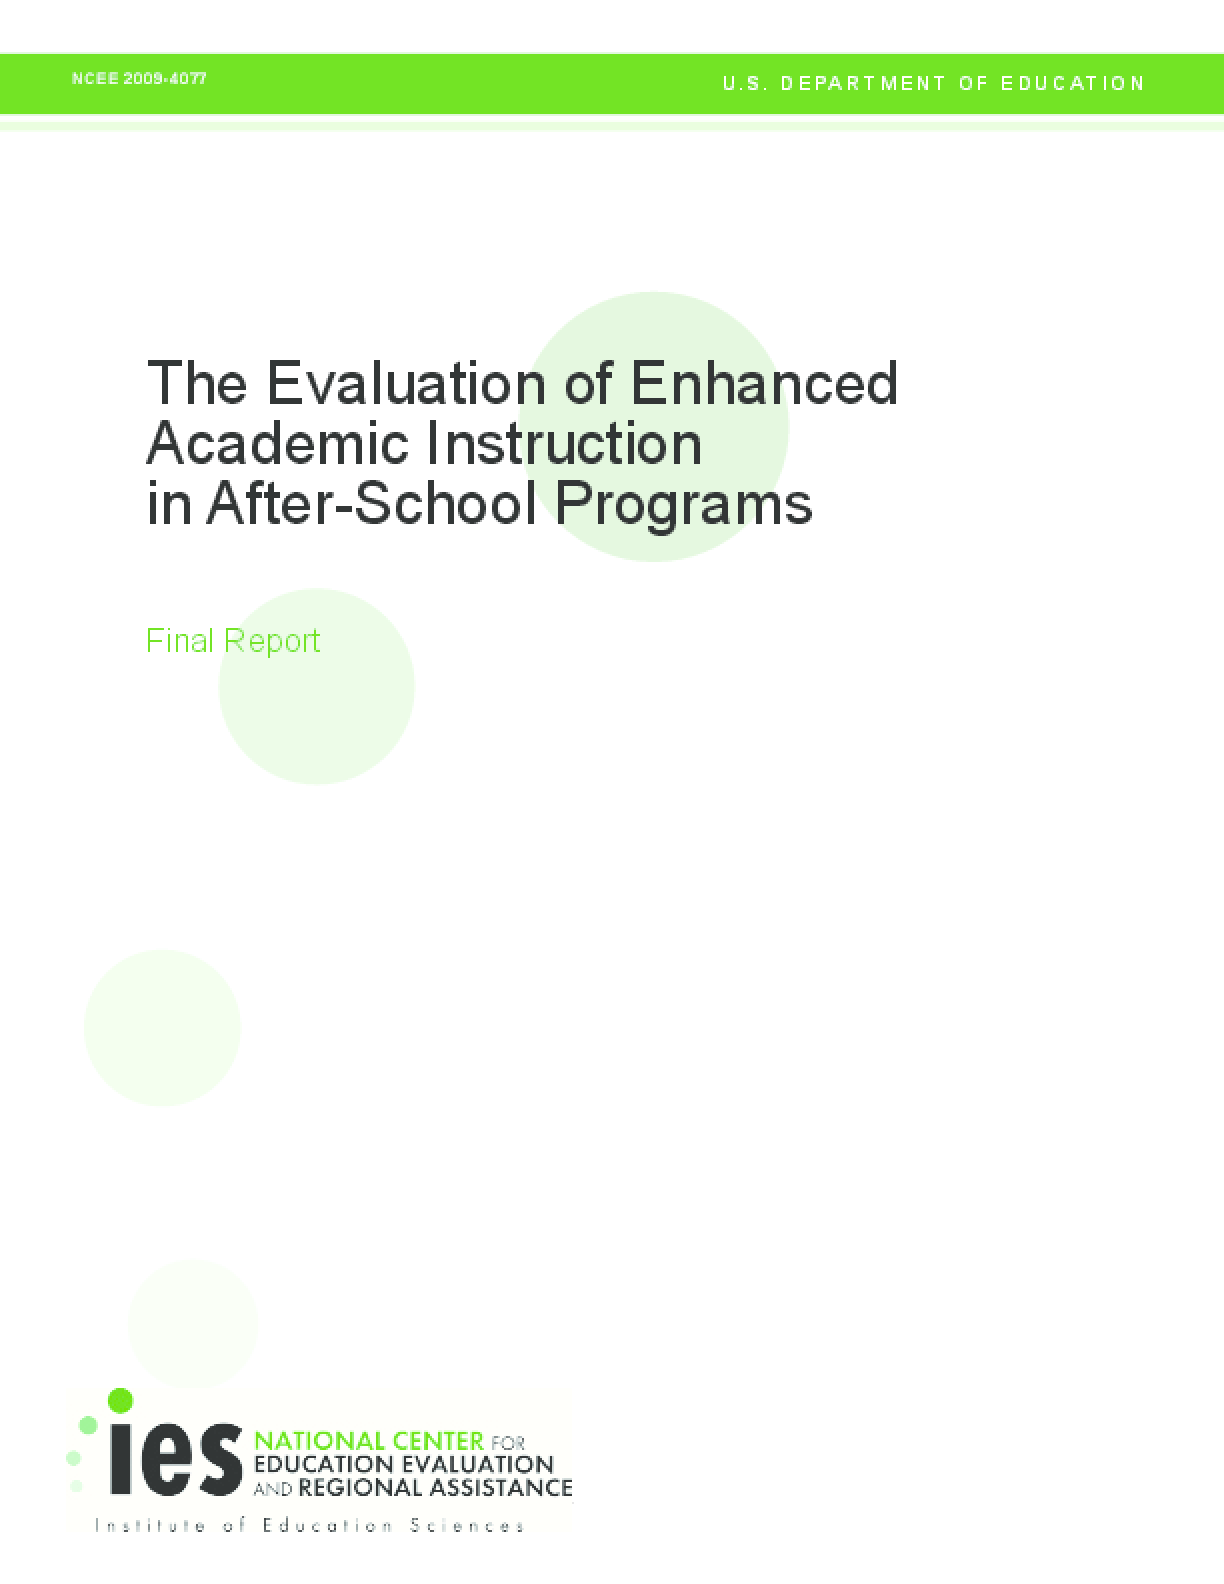 The Evaluation of Enhanced Academic Instruction in After-School Programs: Final Report